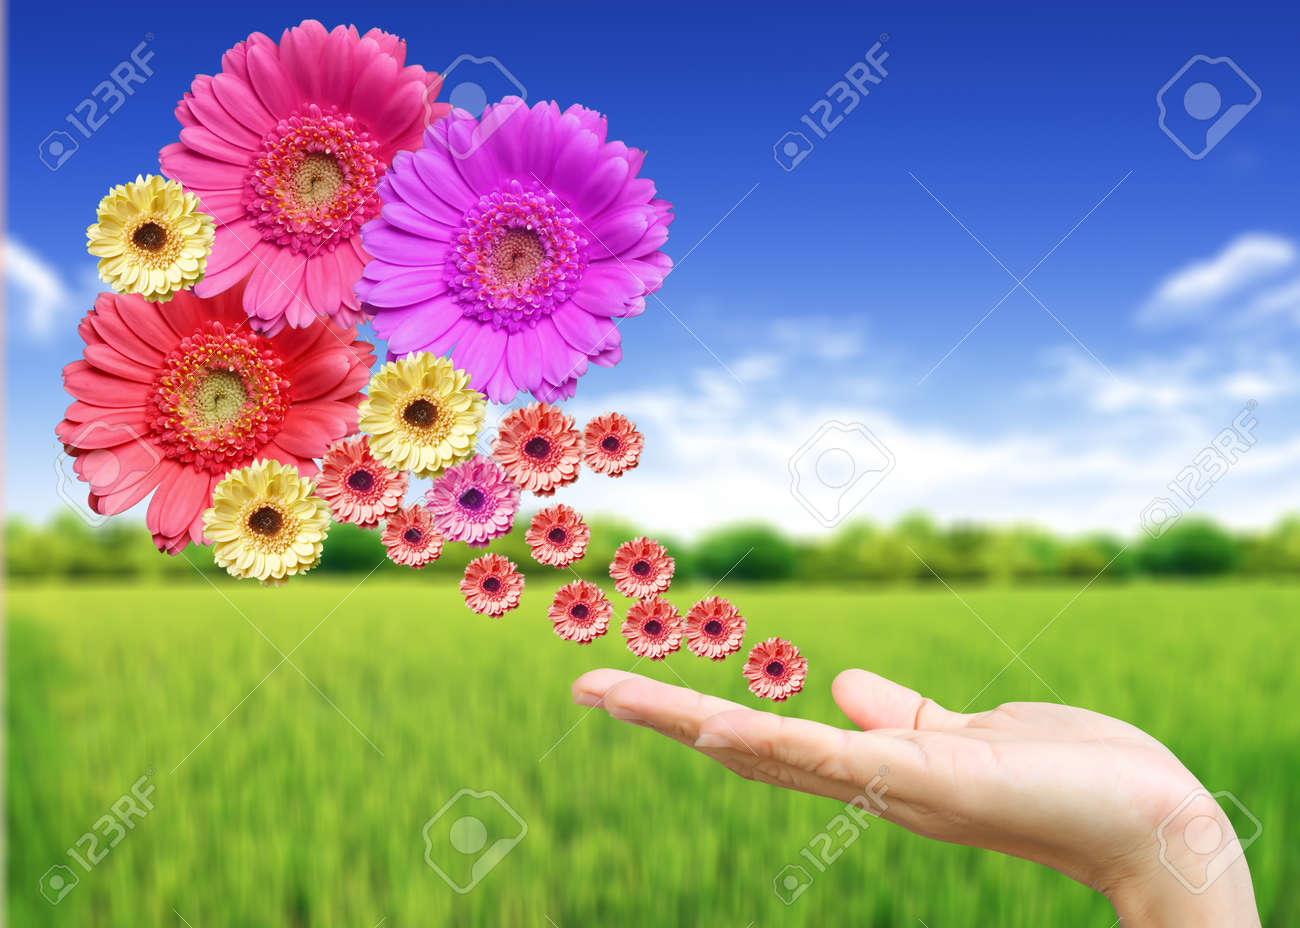 Woman's hand with flowers Stock Photo - 9904993